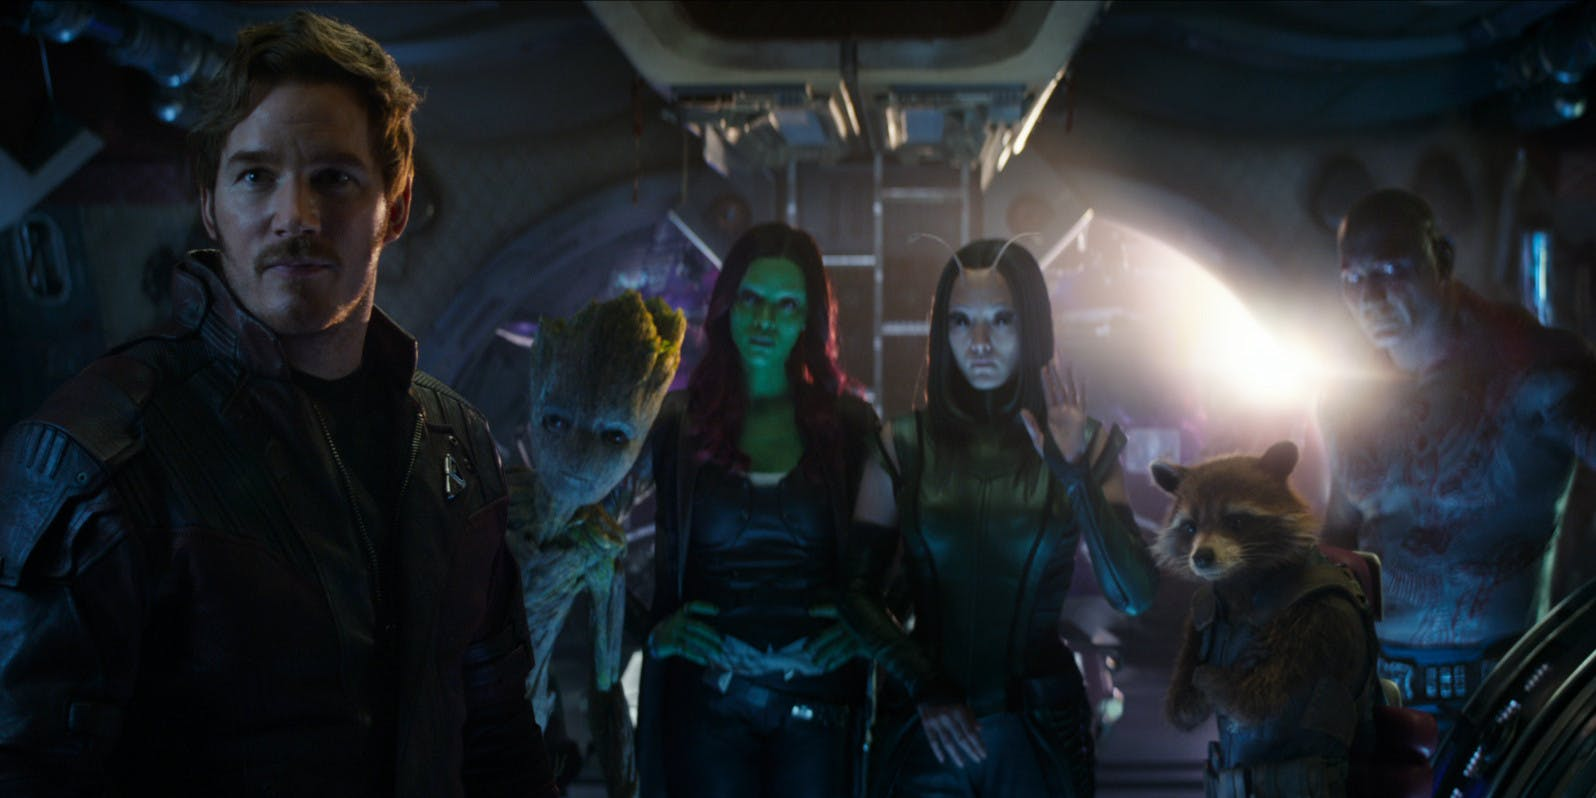 Chris Pratt as Star-Lord, Vin Diesel (voiced) as Teenage Groot, Zoe Saldana as Gamora, Pom Klementieff as Mantis, Bradley Cooper (voiced) as Rocket, Dave Bautista as Drax the Destroyer in 'Avengers: Infinity War'